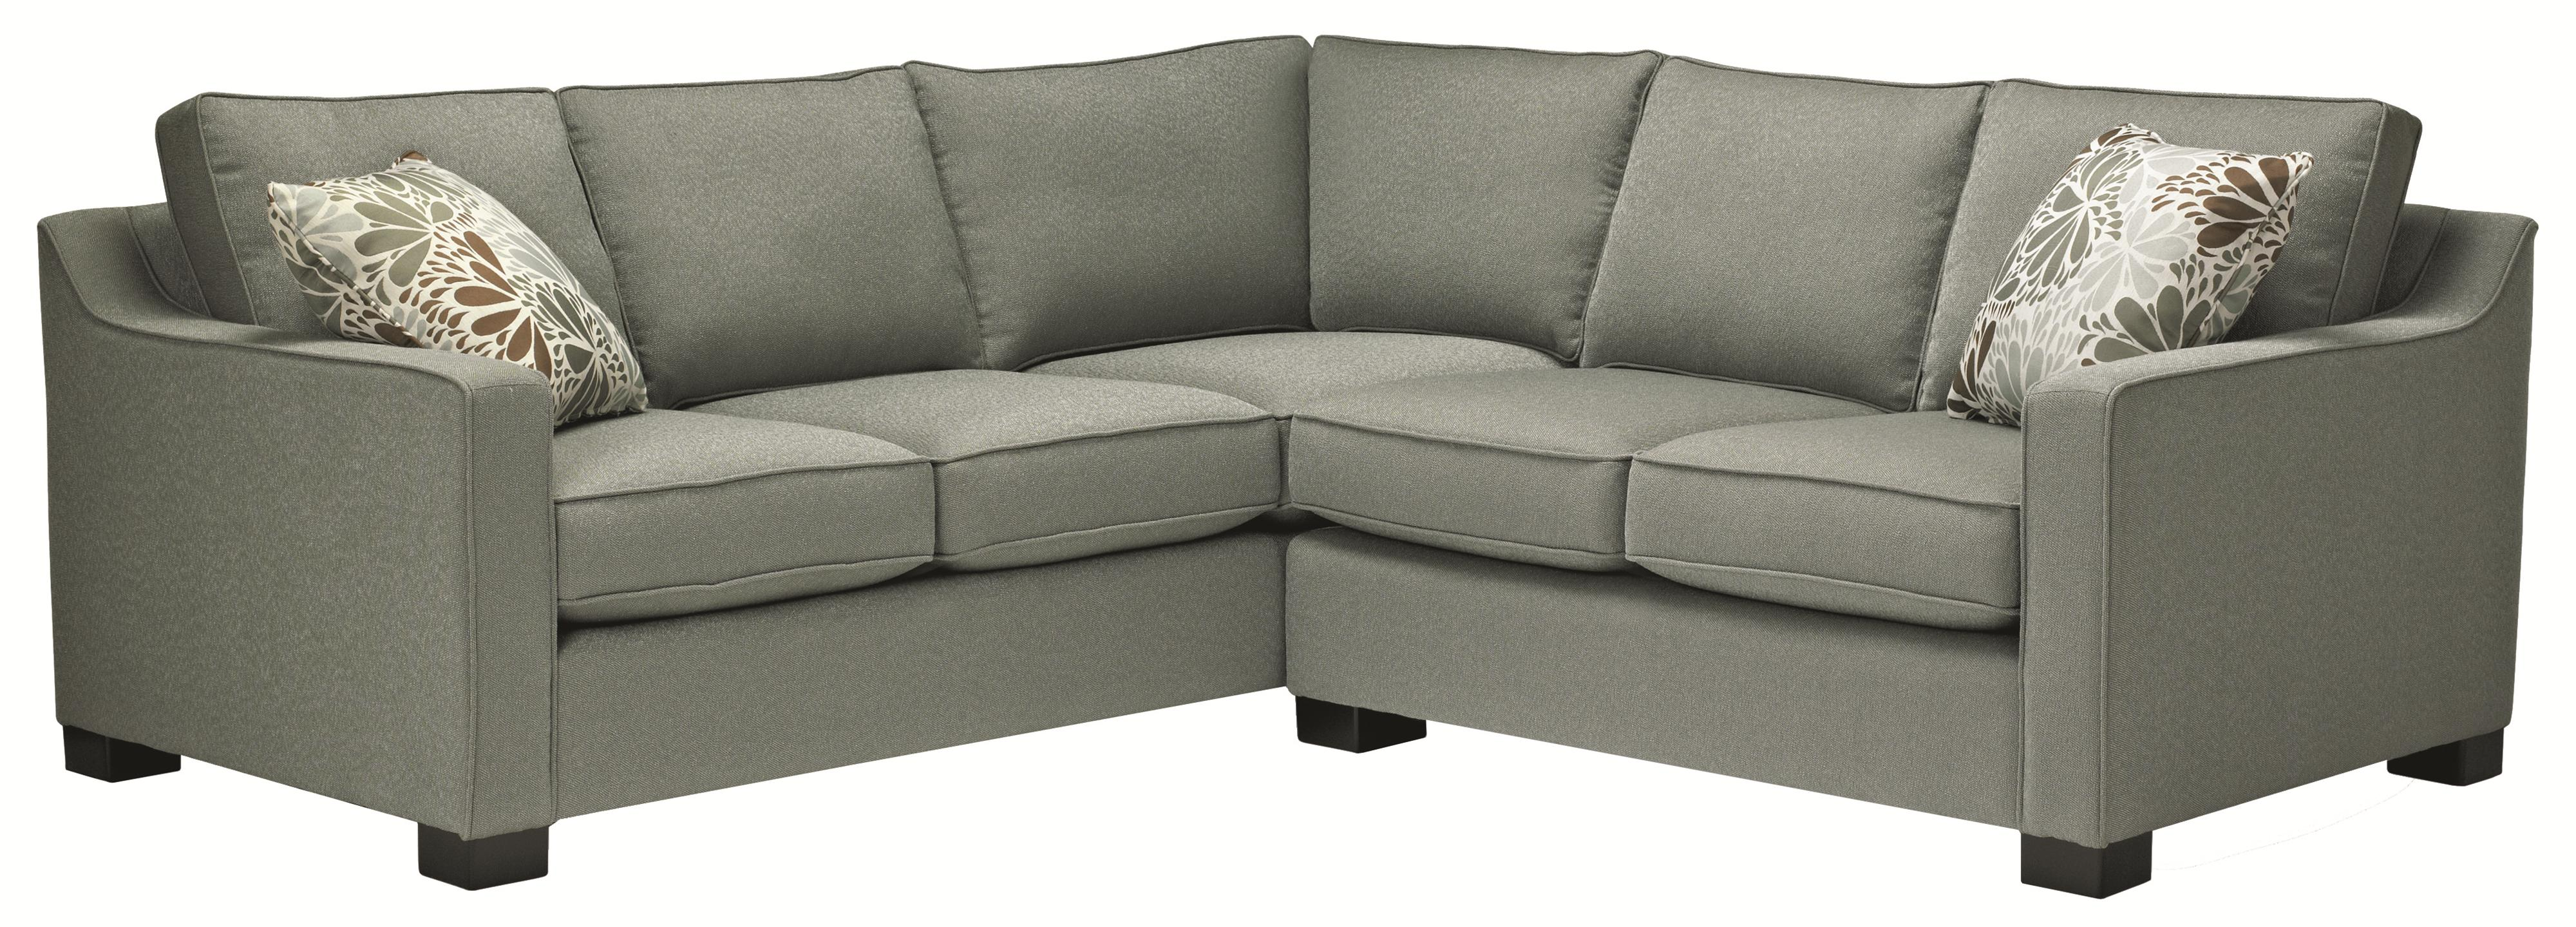 Living Room Sectional Sofa by Stylus at Upper Room Home Furnishings